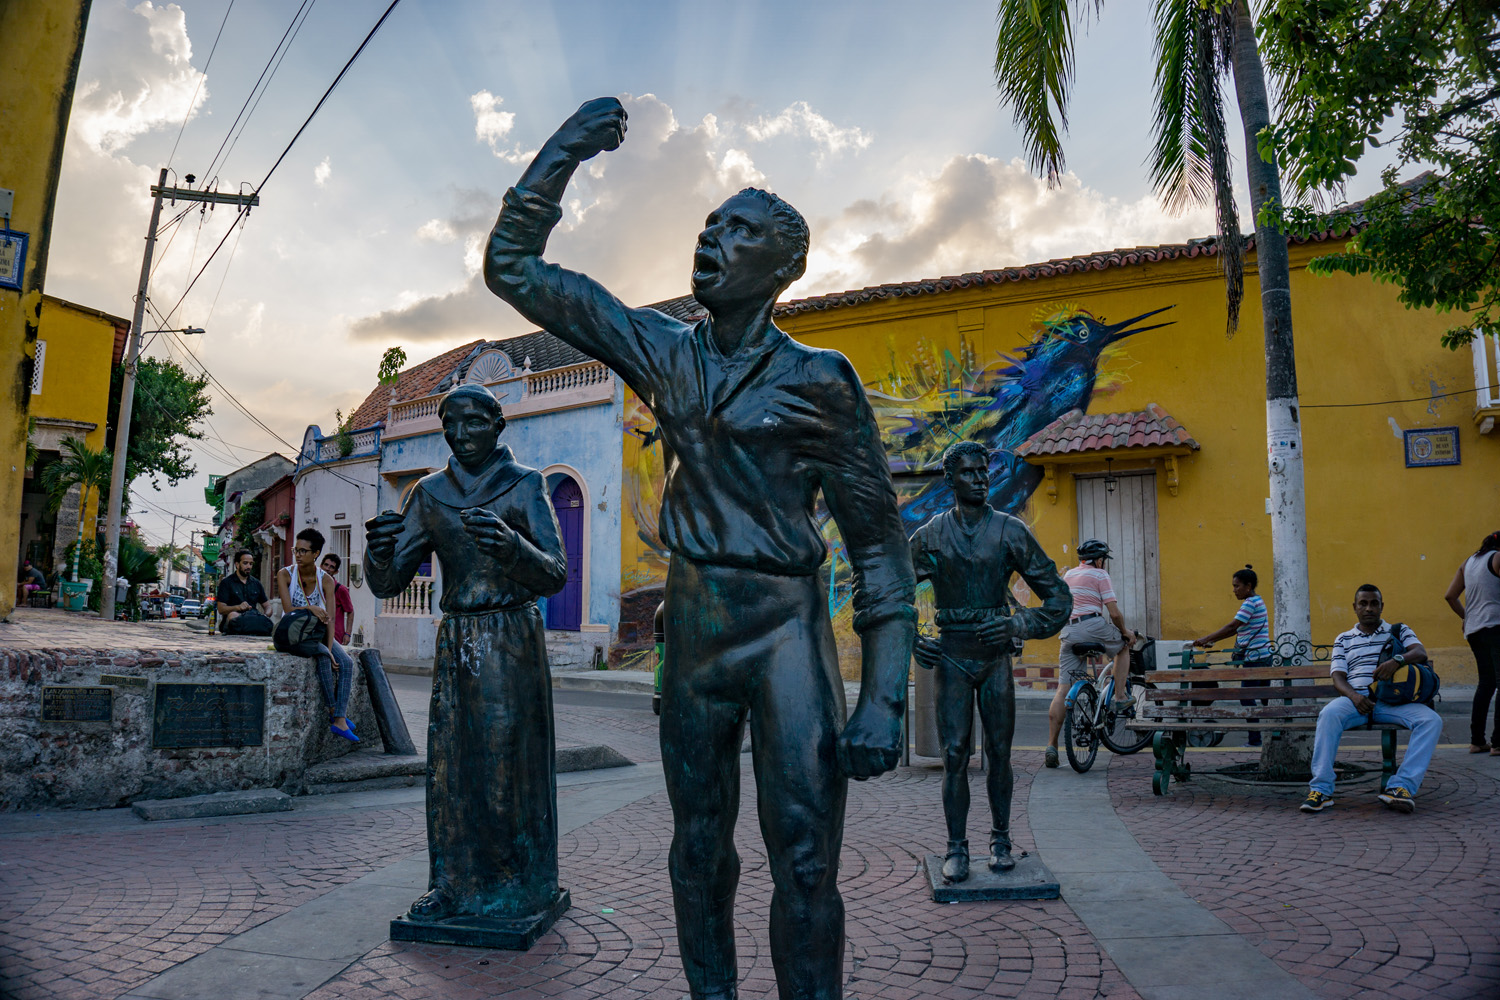 The statue of Pedro Romero, hero of Cartagena's independence movement, Plaza de la Trinidad, Getsemani, Cartagena.